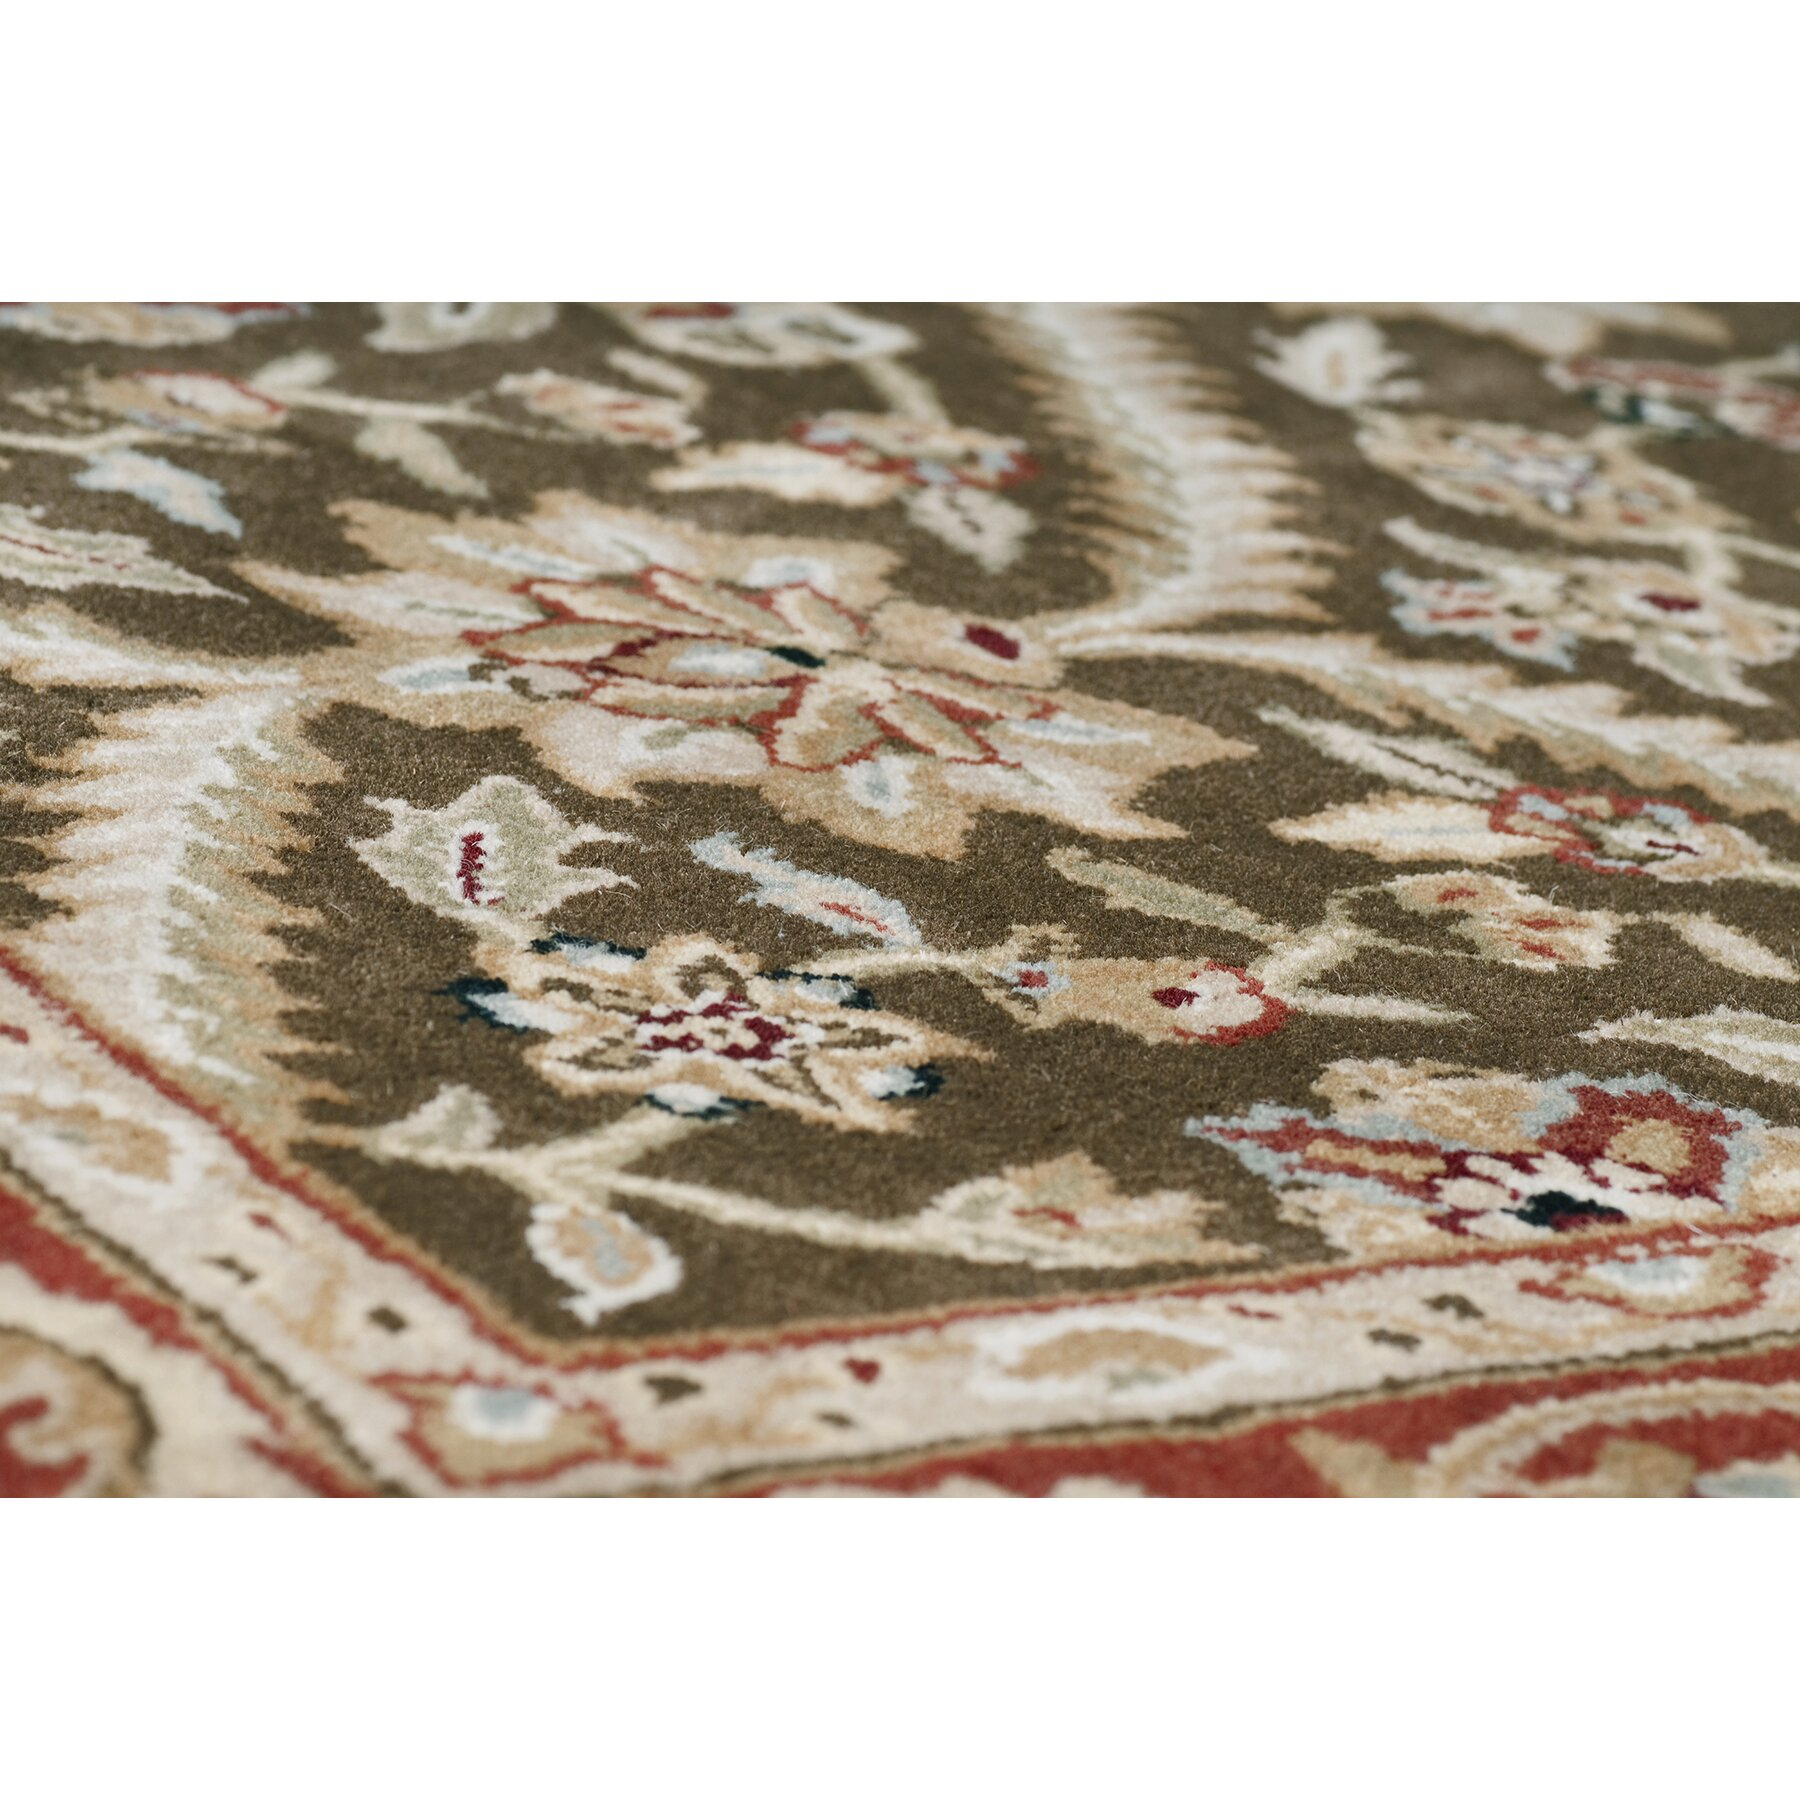 Amer Rugs Cardinal Cocoa Brown Red Boniface Area Rug